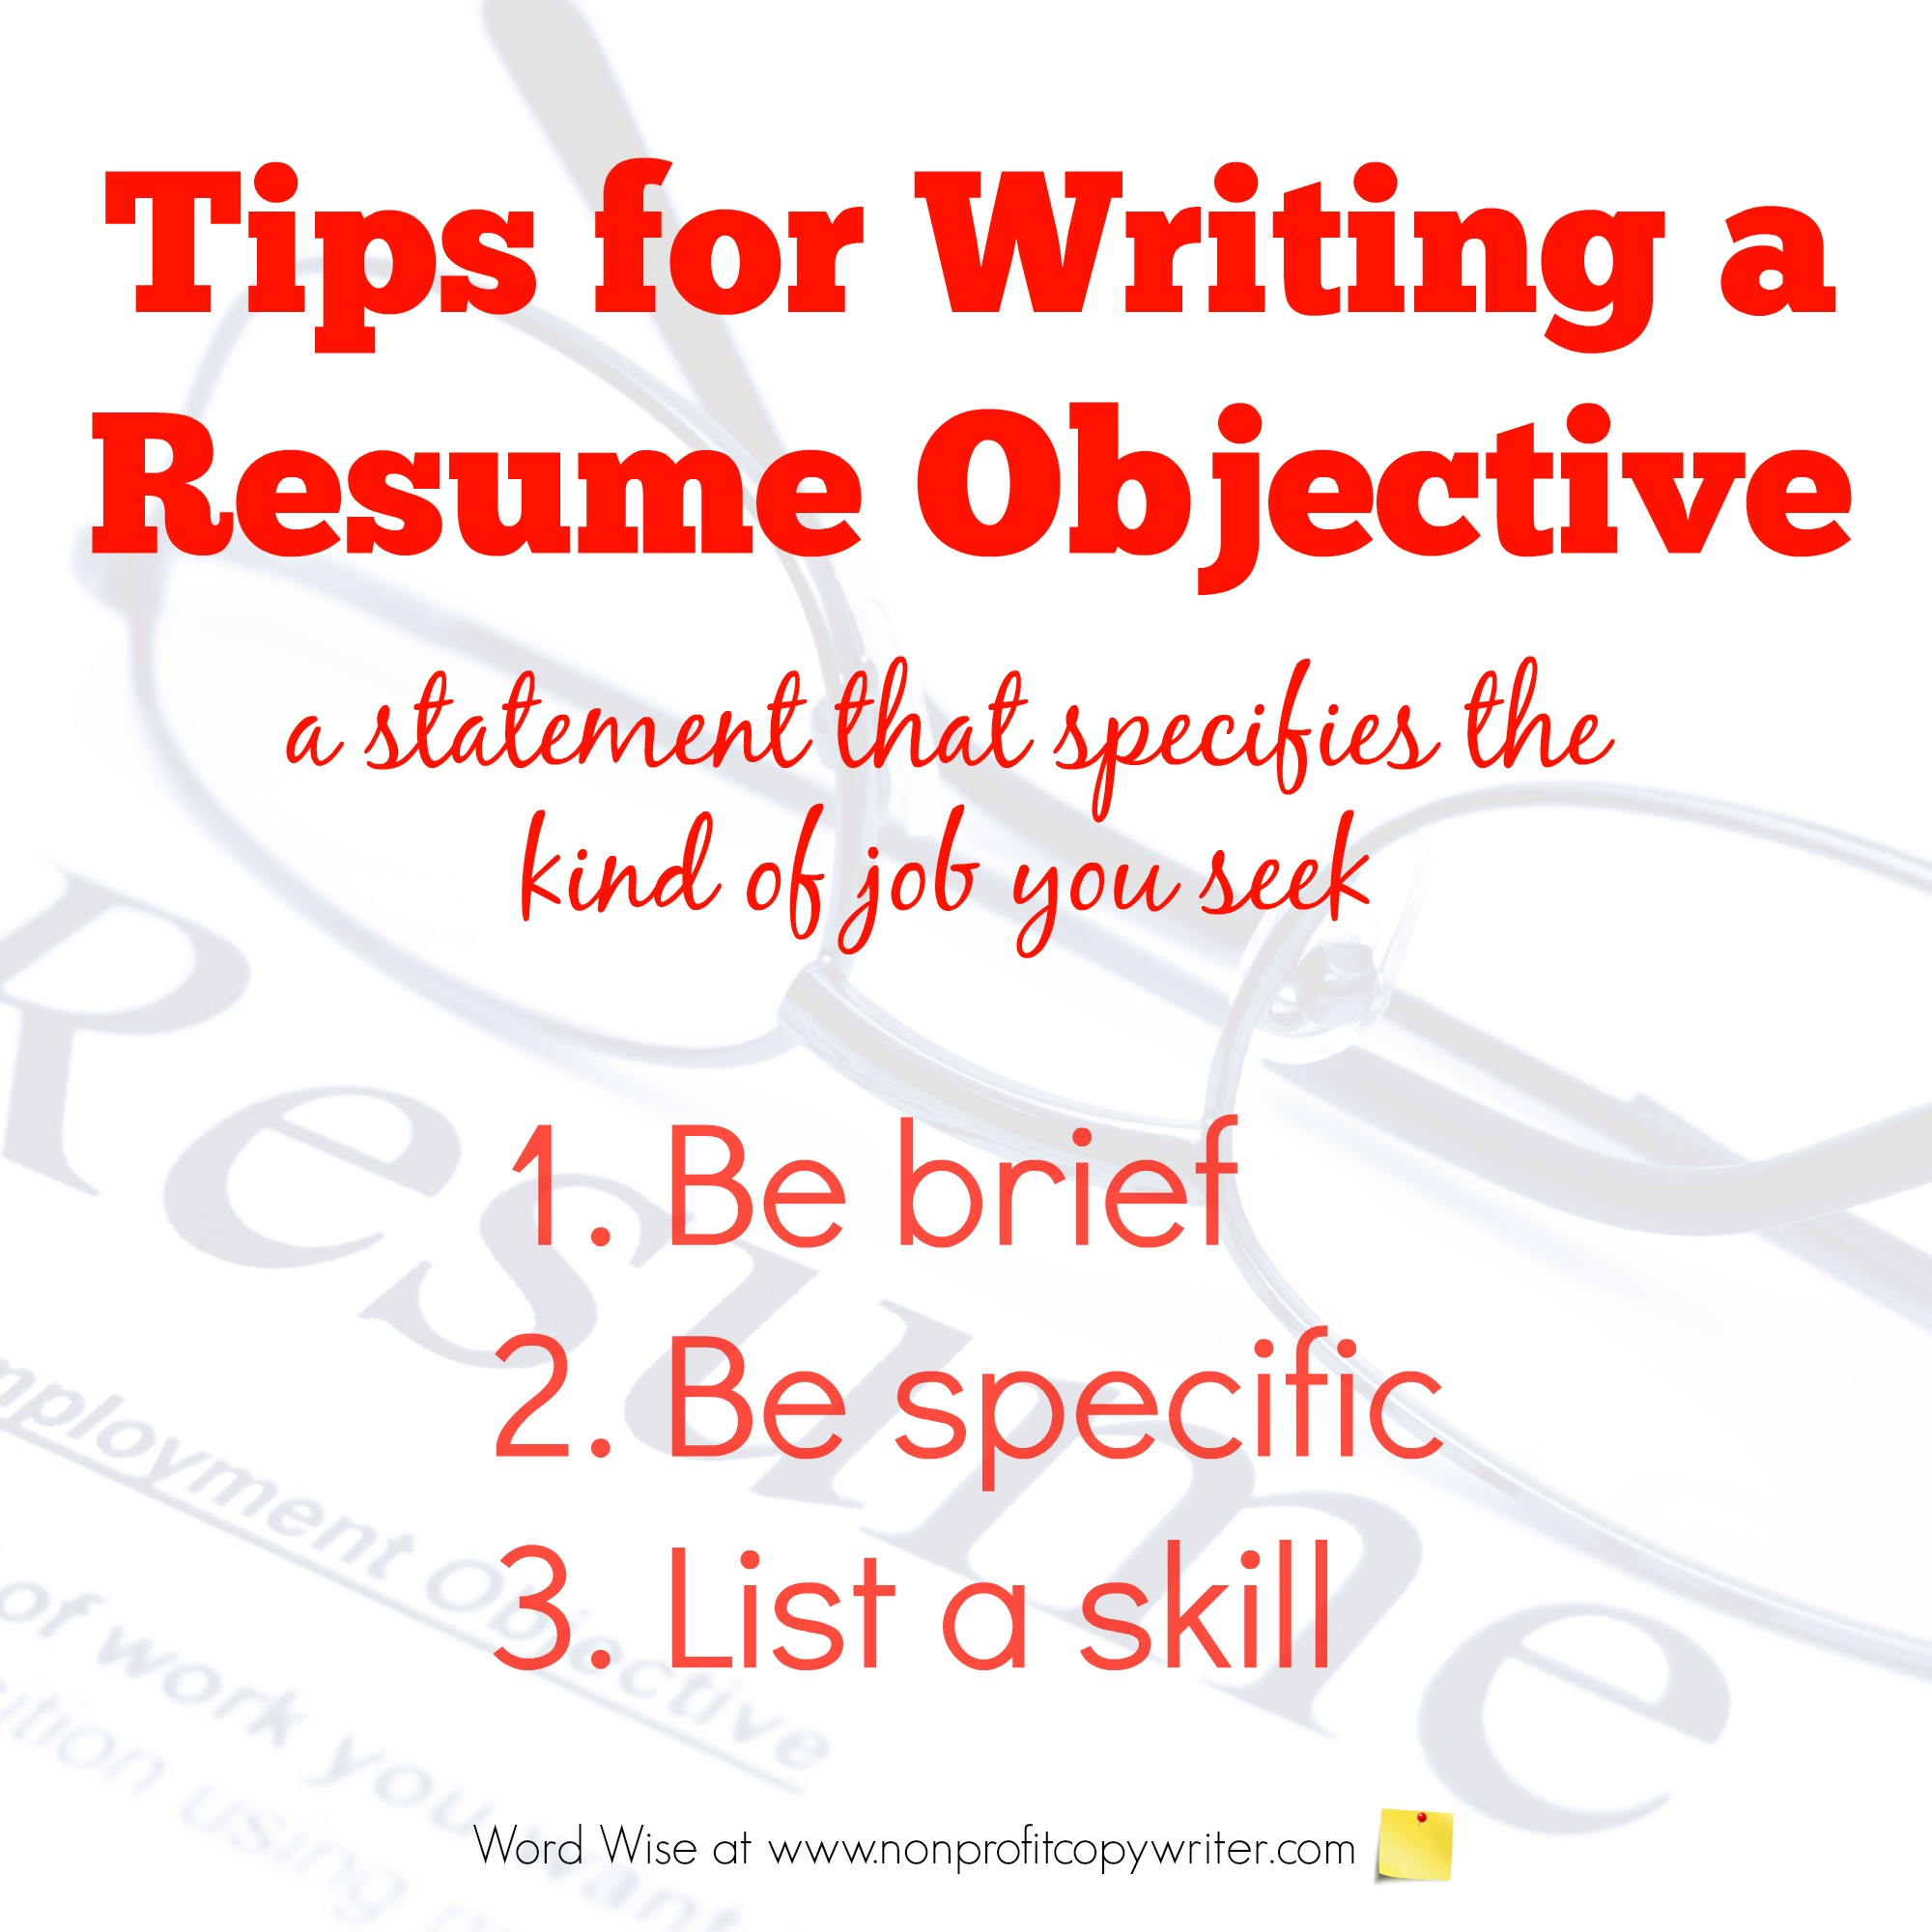 3 Tips for Writing a Resume Objective with Word Wise at Nonprofit Copywriter